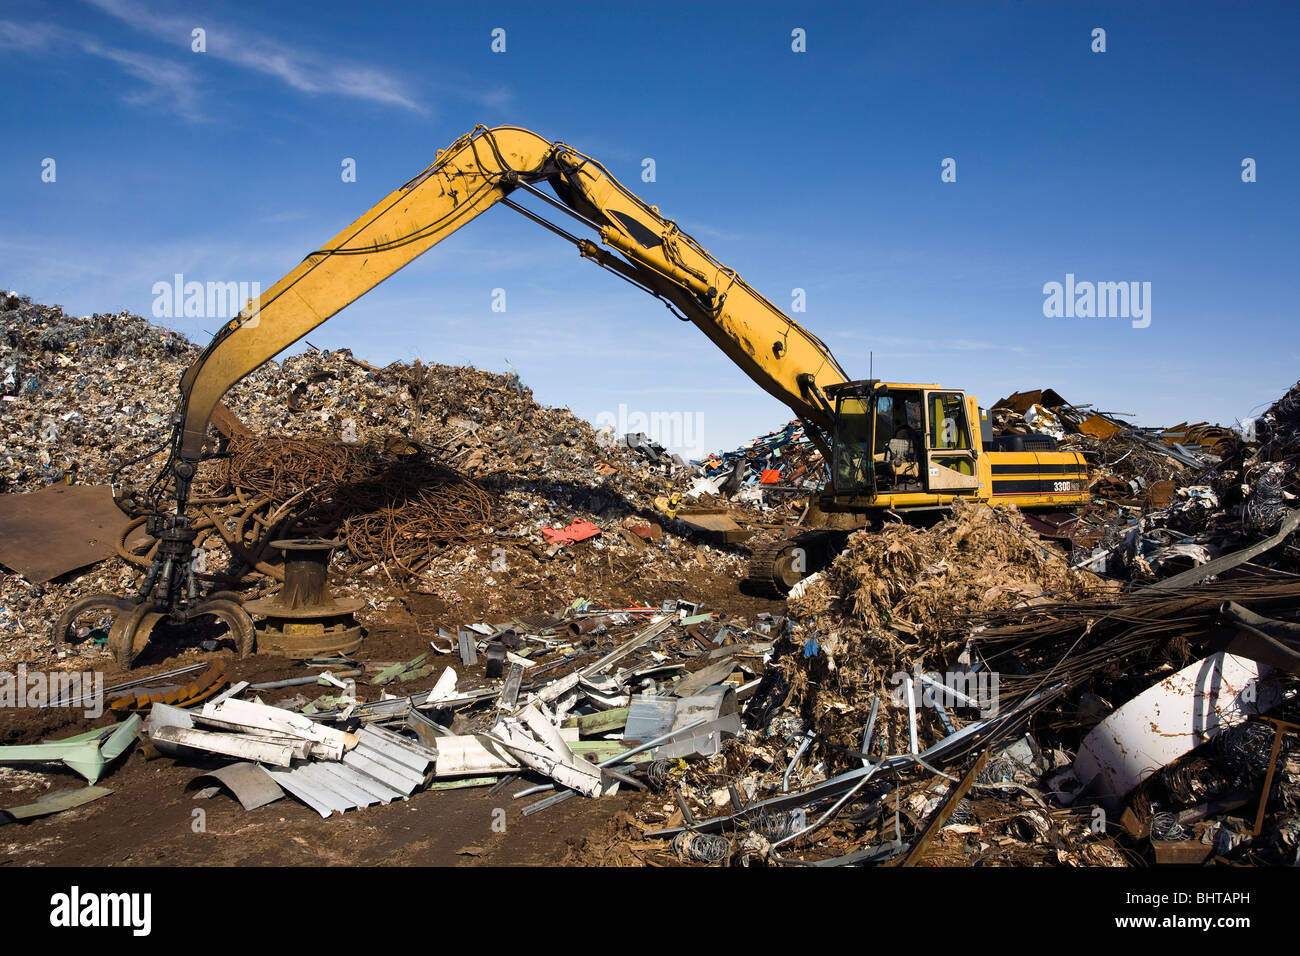 Excavating machine, with large grapple claw, at scrap metal yard. - Stock Image